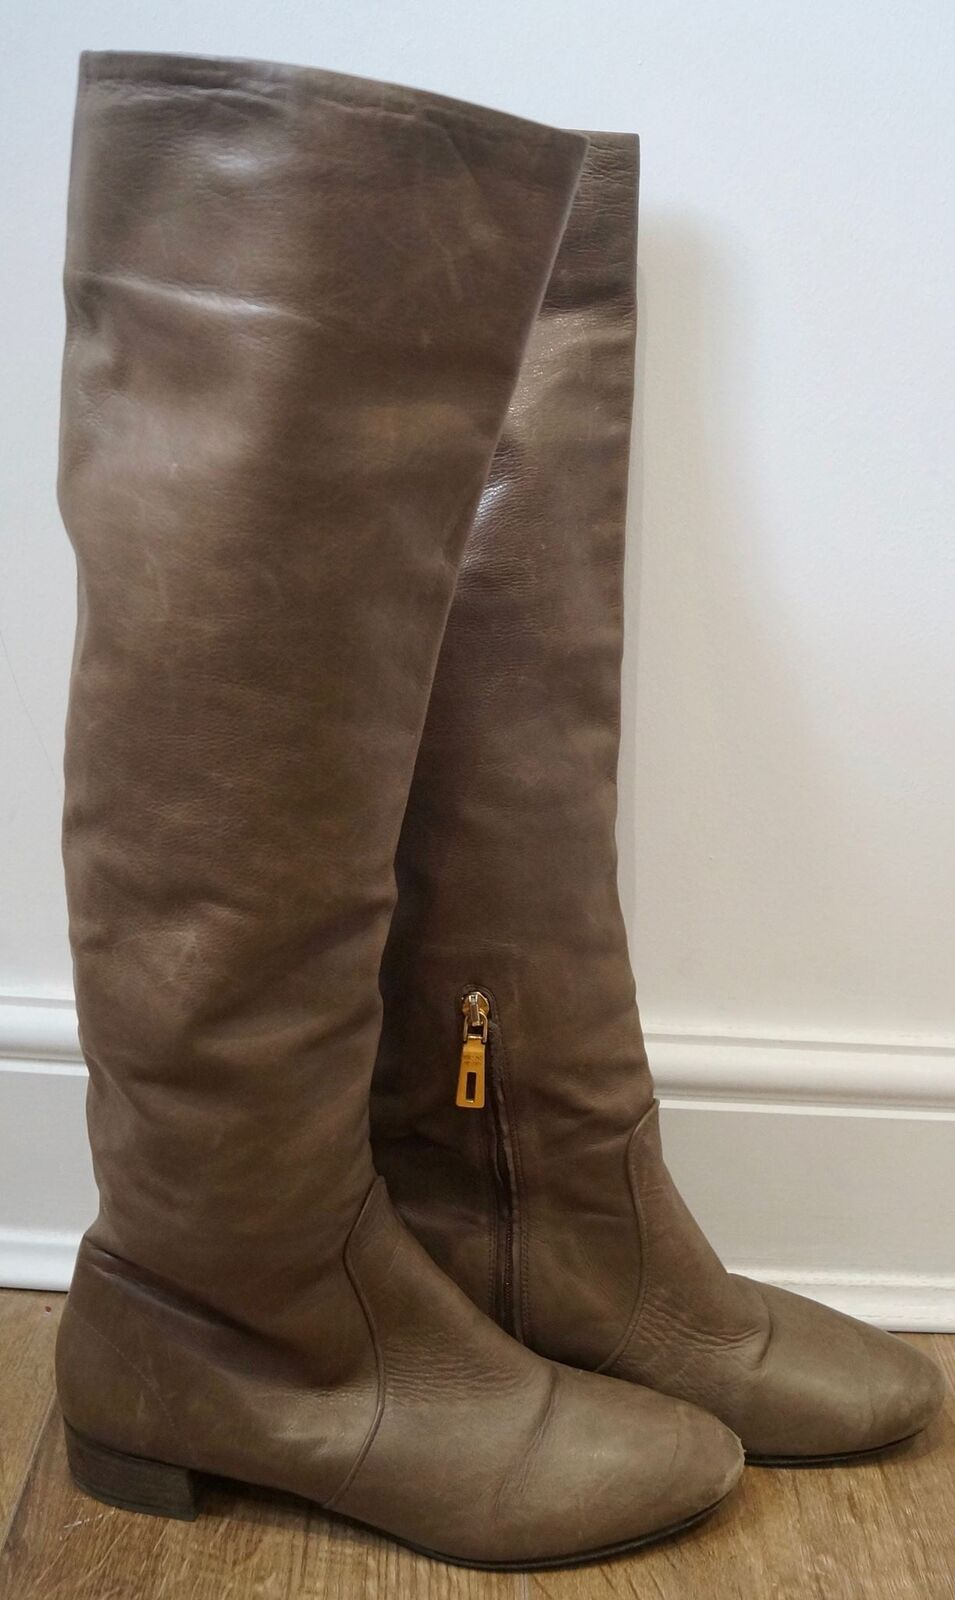 PRADA Women's Brown Leather Zip Fastened Tall Knee High Lined Boots EU38.5 UK5.5